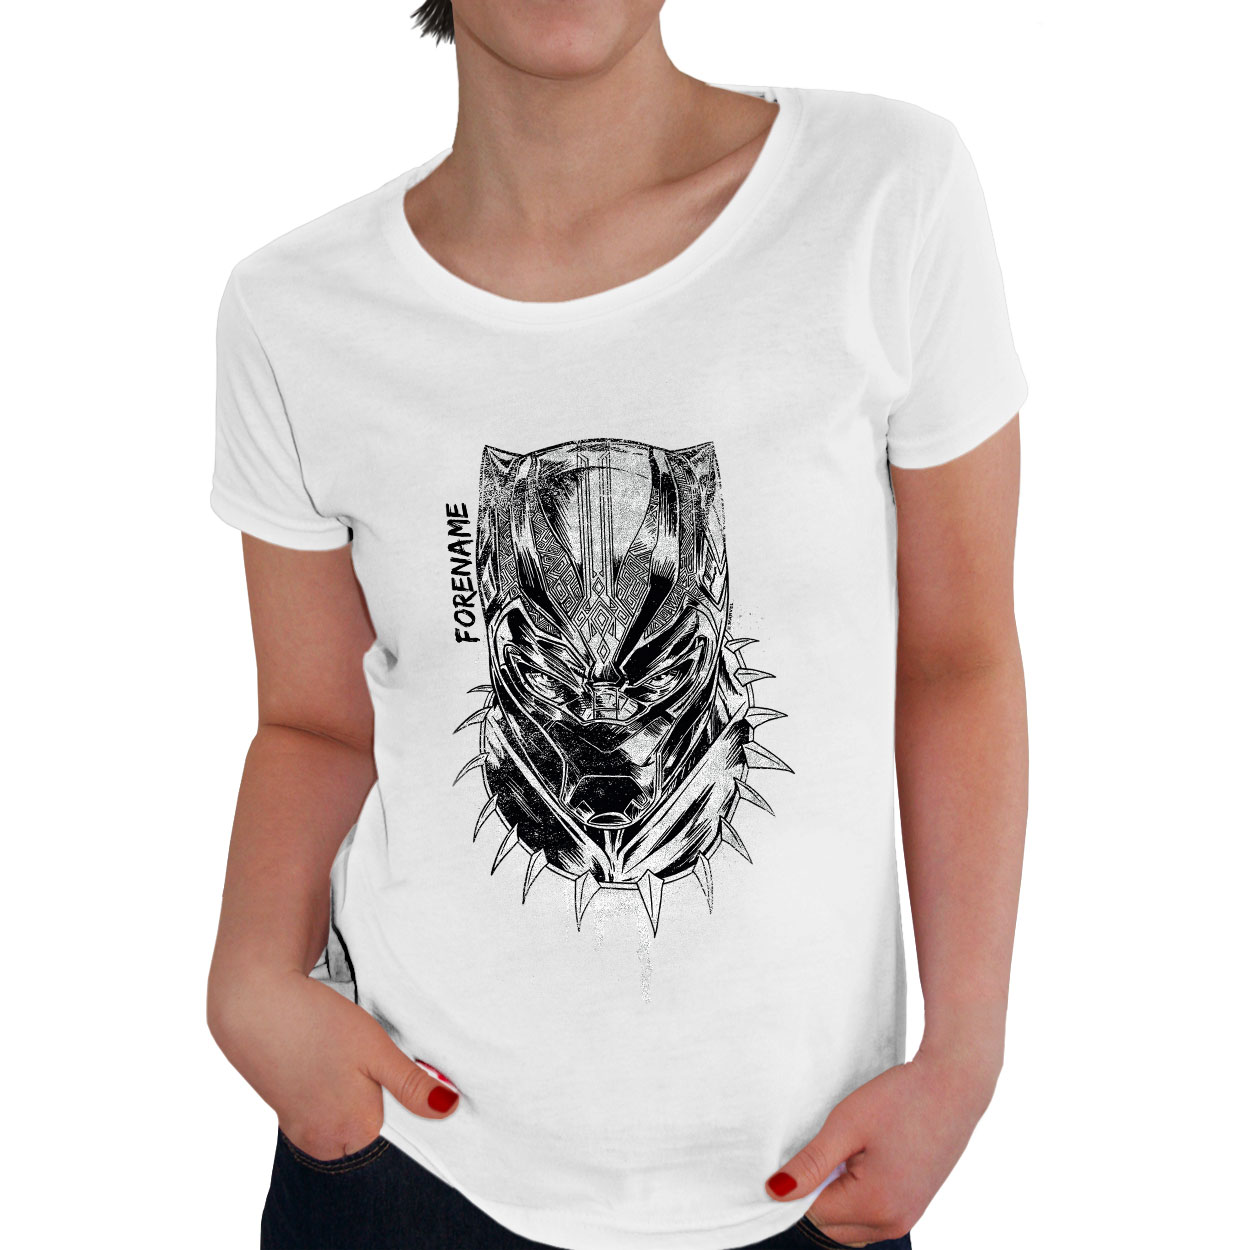 Marvel Black Panther Sketch Ladies T-Shirt